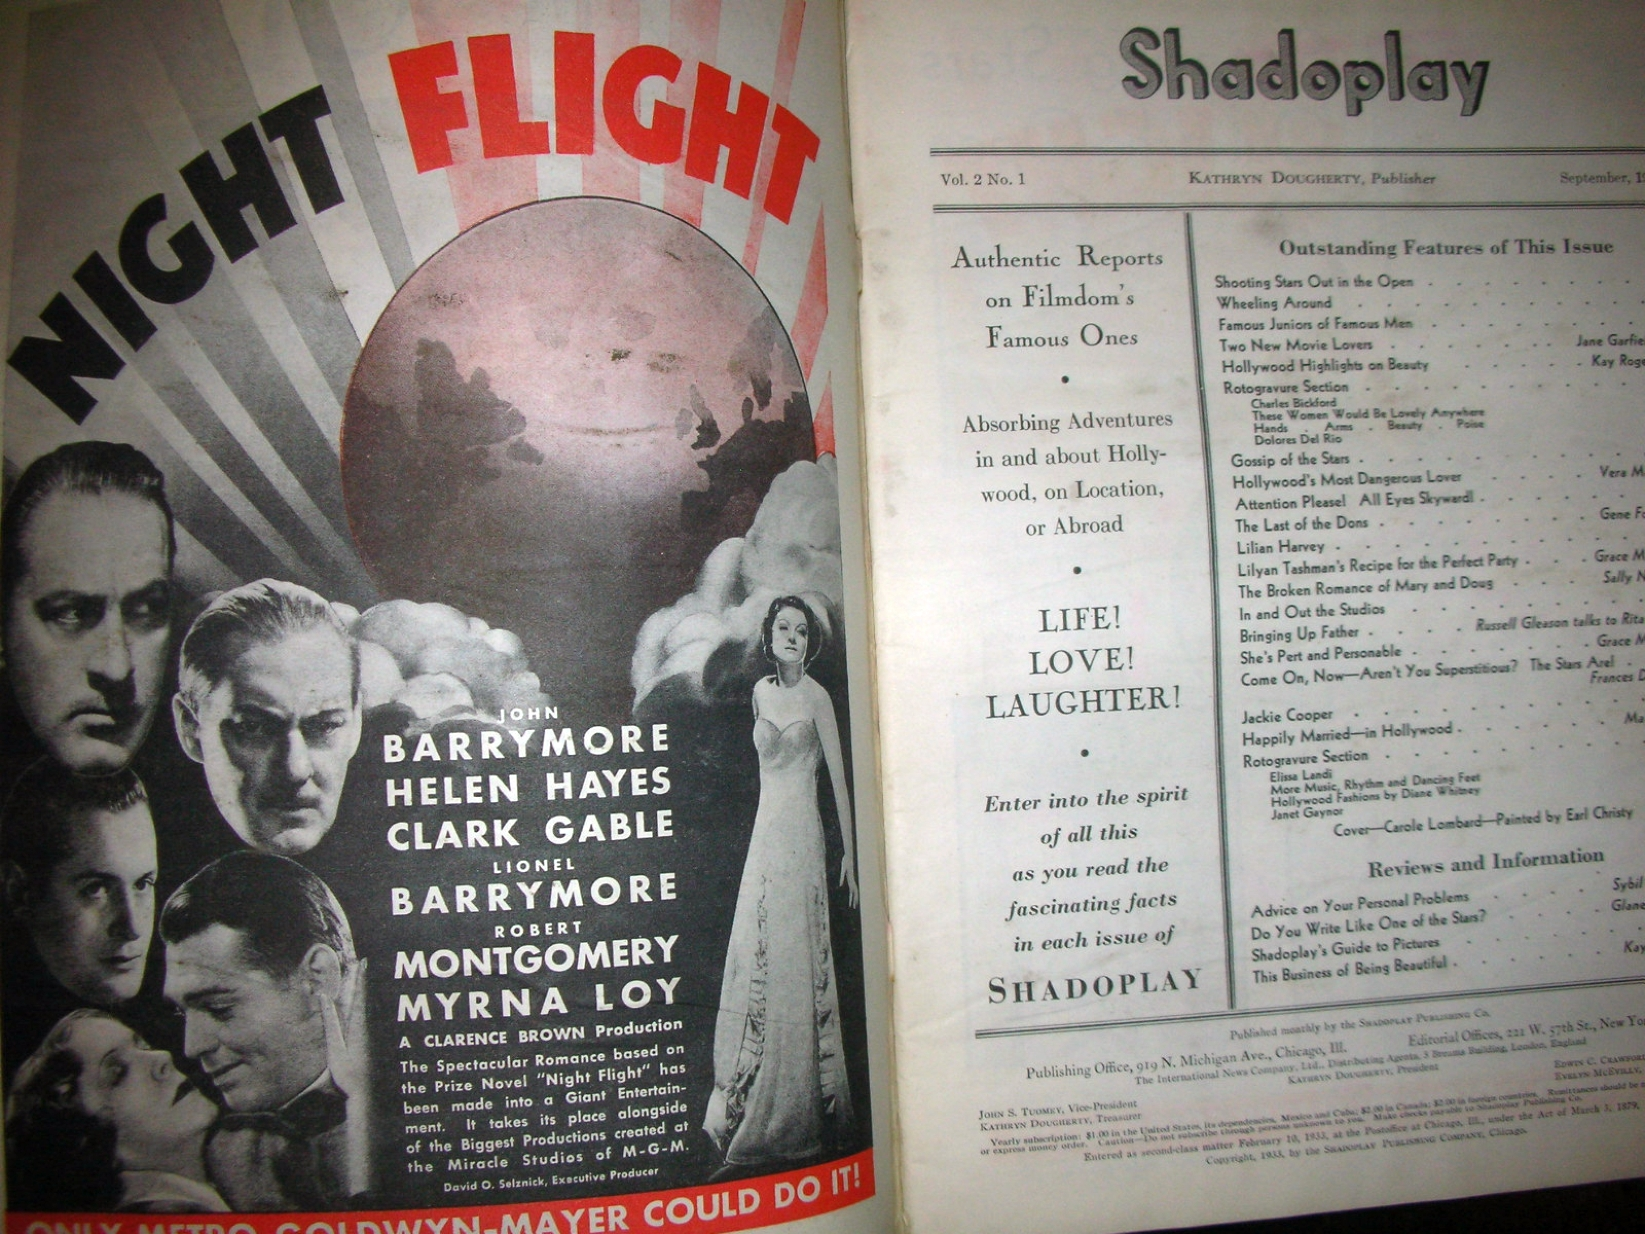 carole lombard shadoplay sept 1933 table of contents large